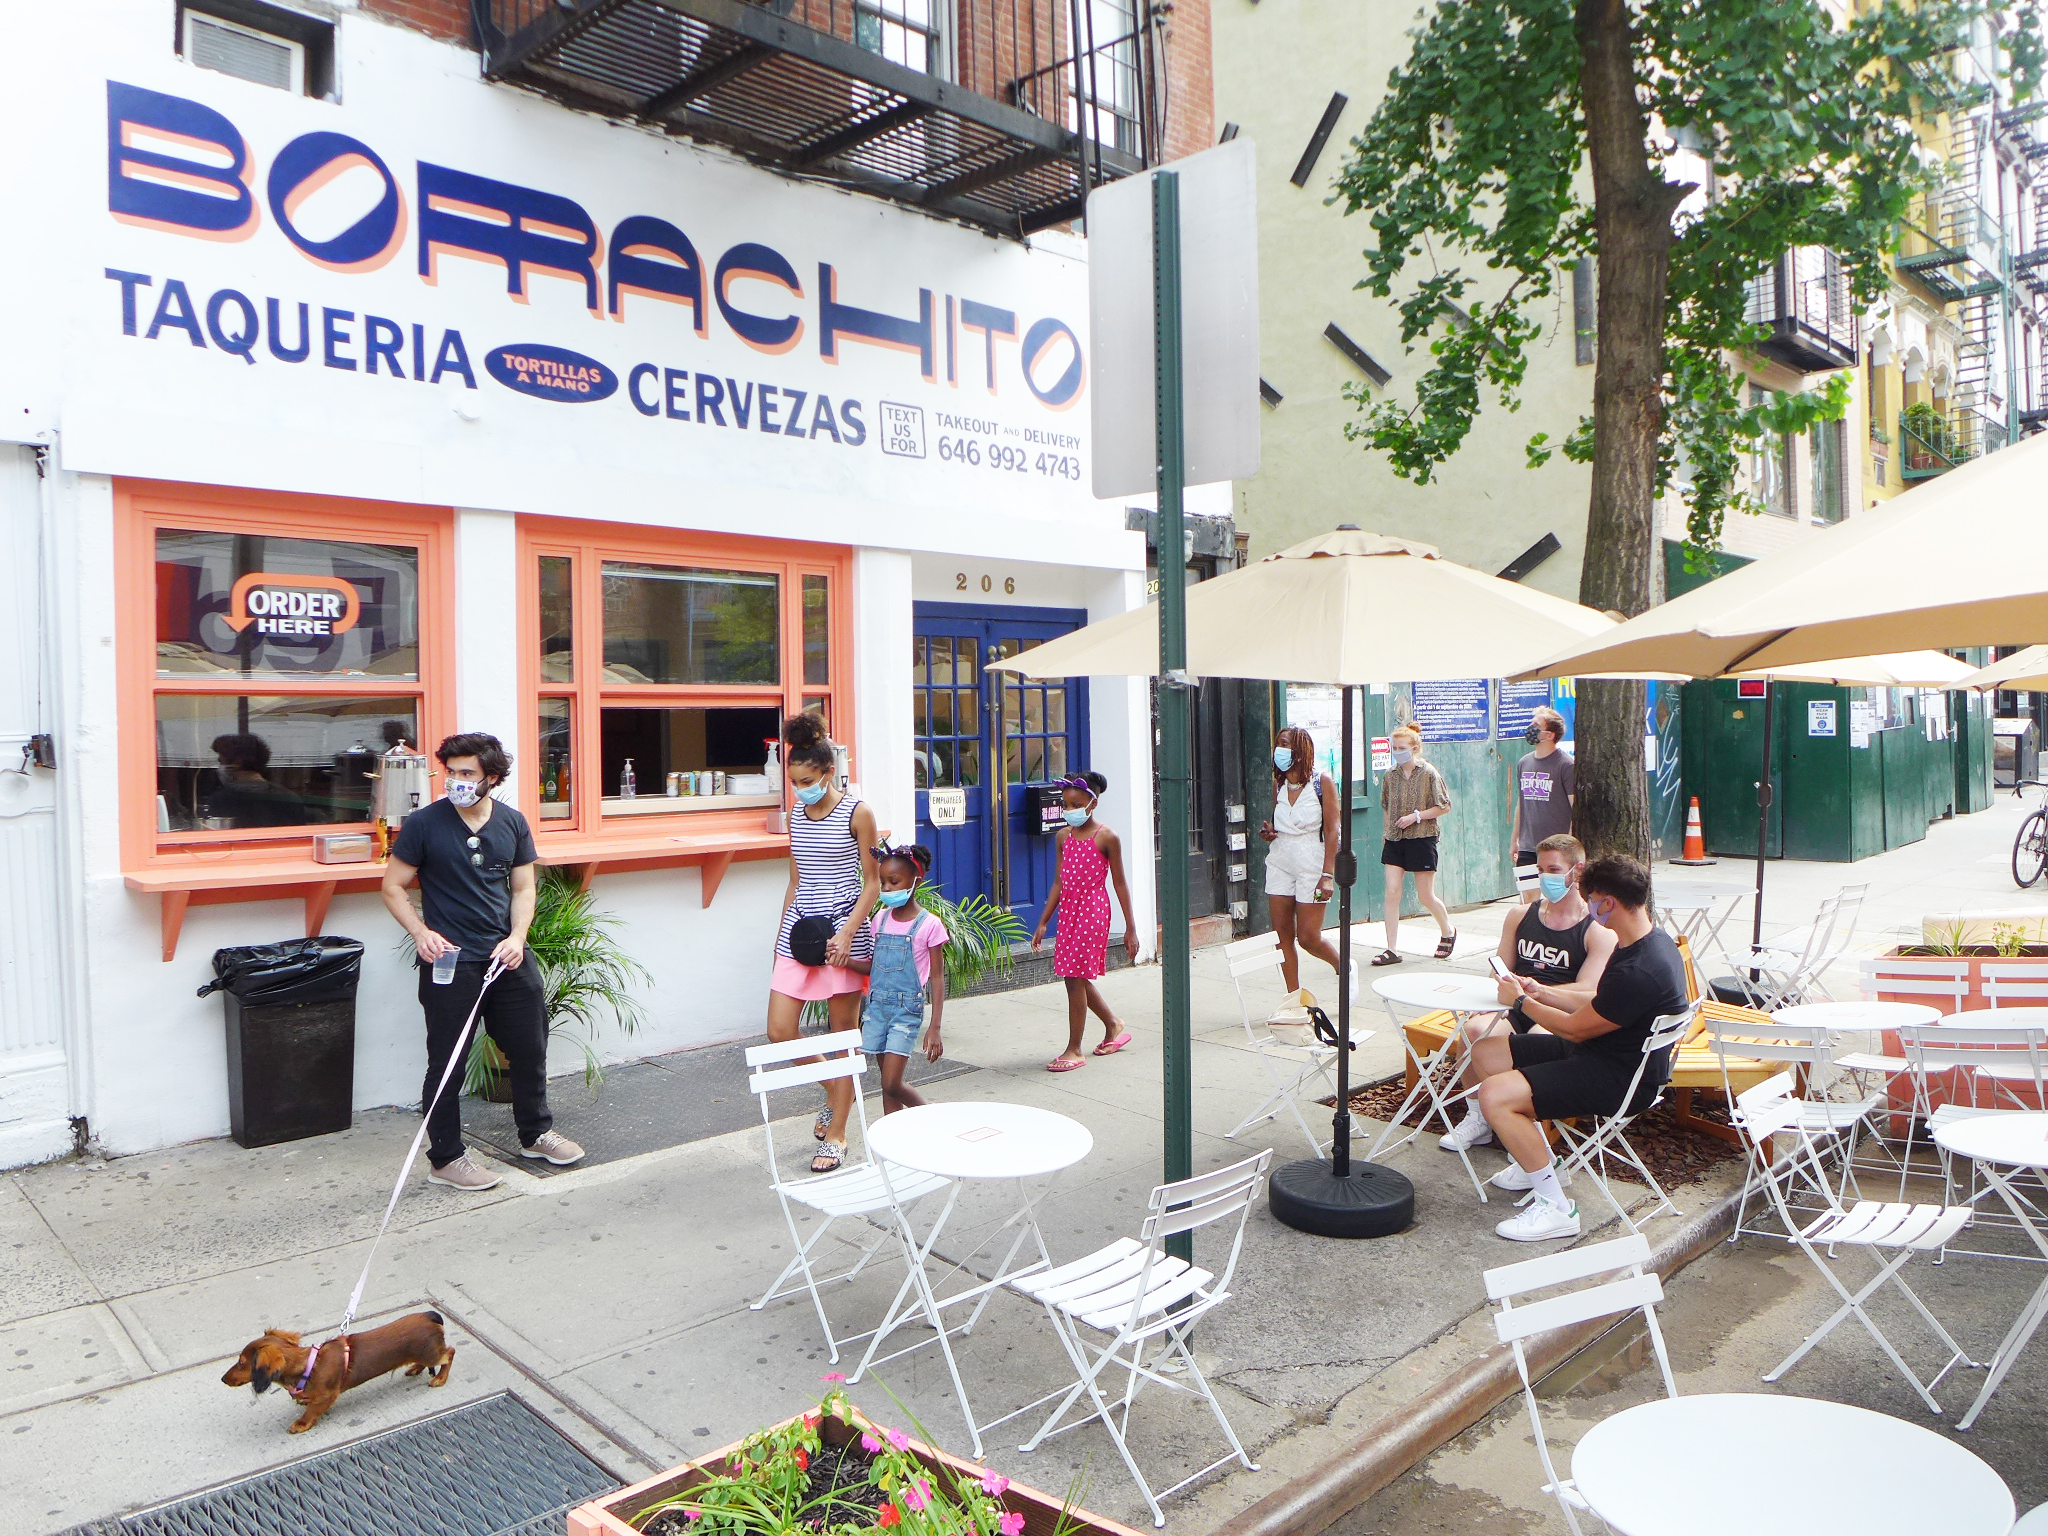 Bright white storefront with stenciled name, pedestrians pass by one with a dachsund, outdoor tables in foreground.